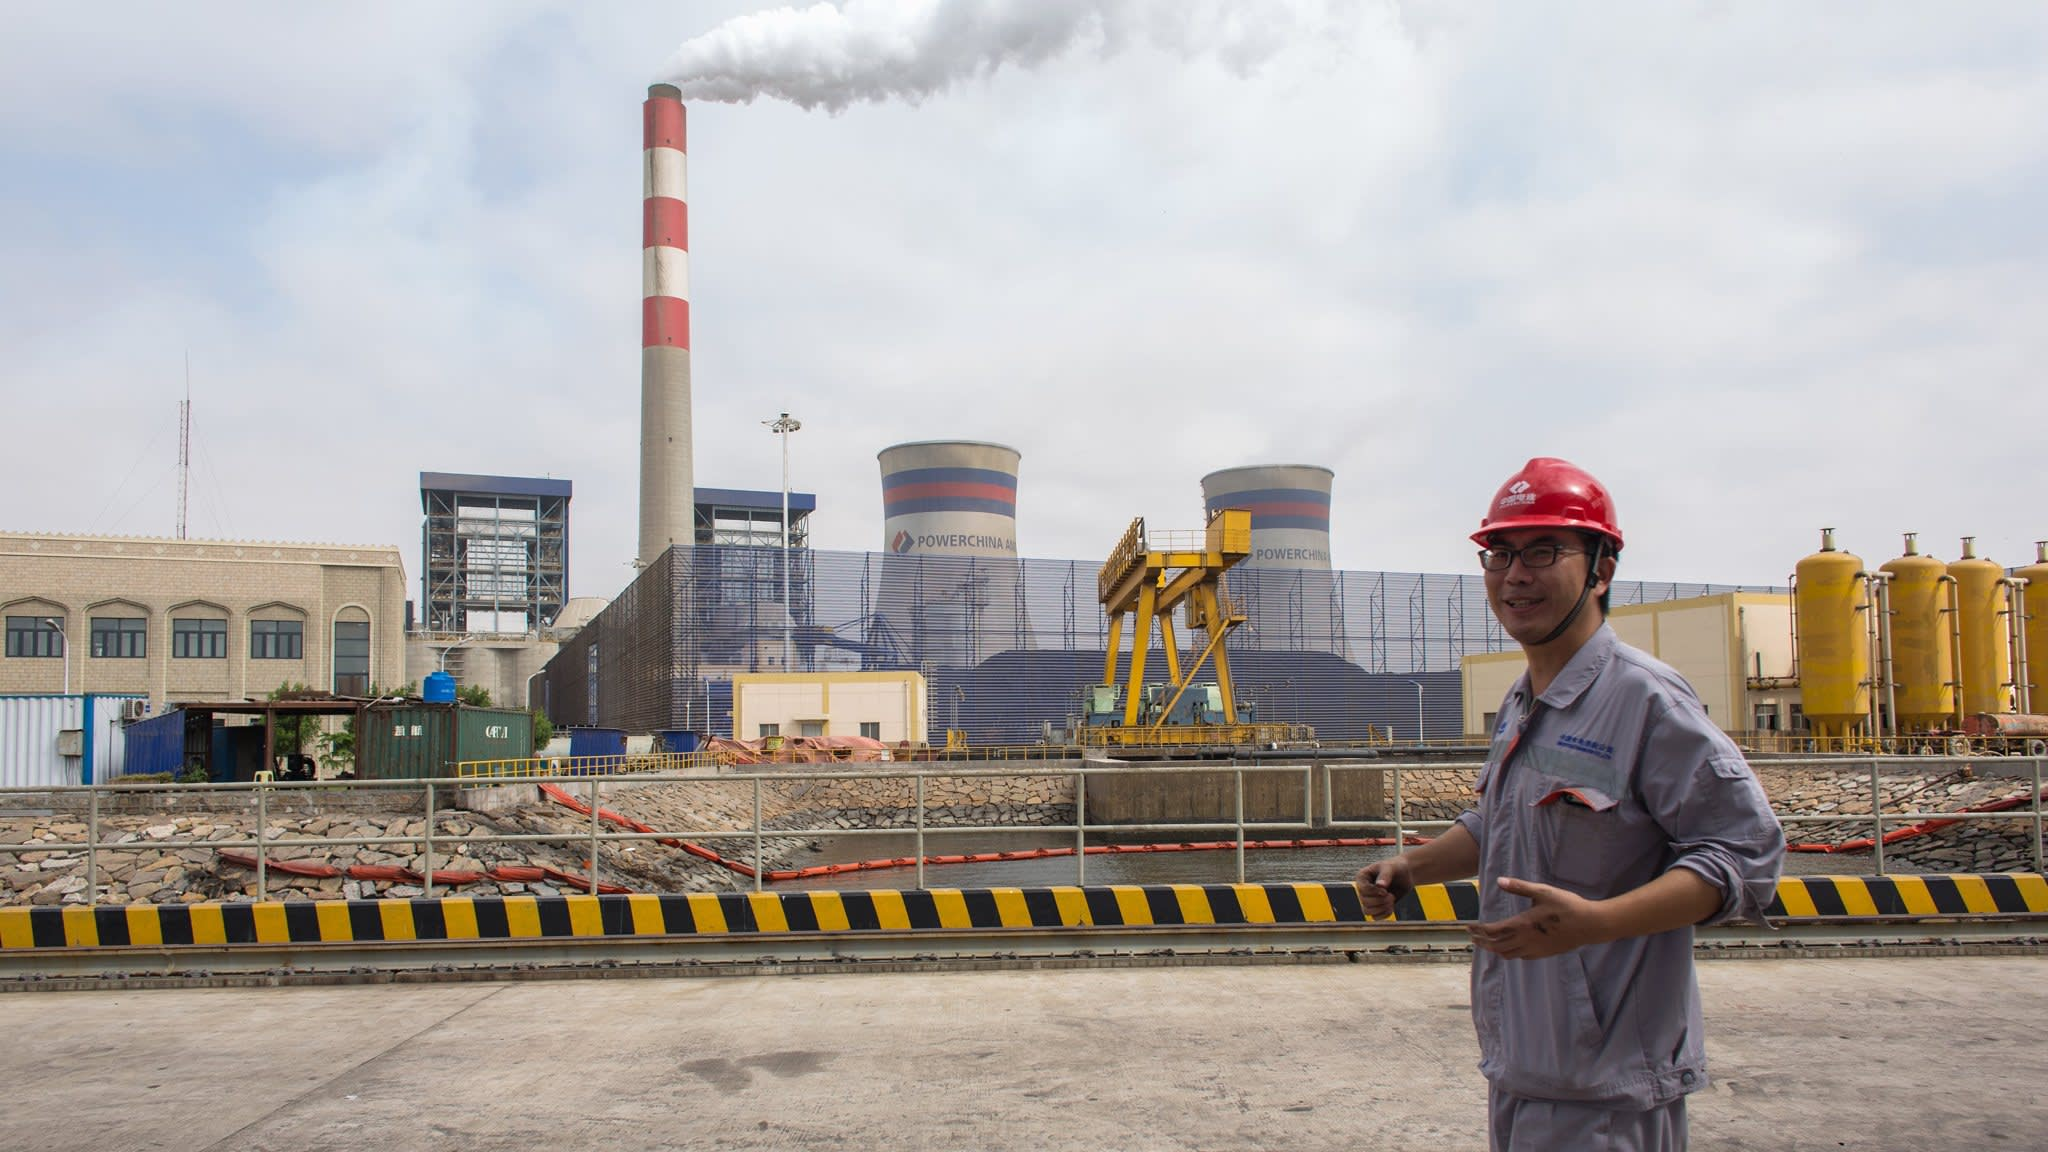 China's Belt and Road Initiative puts Paris climate commitments at risk | Financial Times